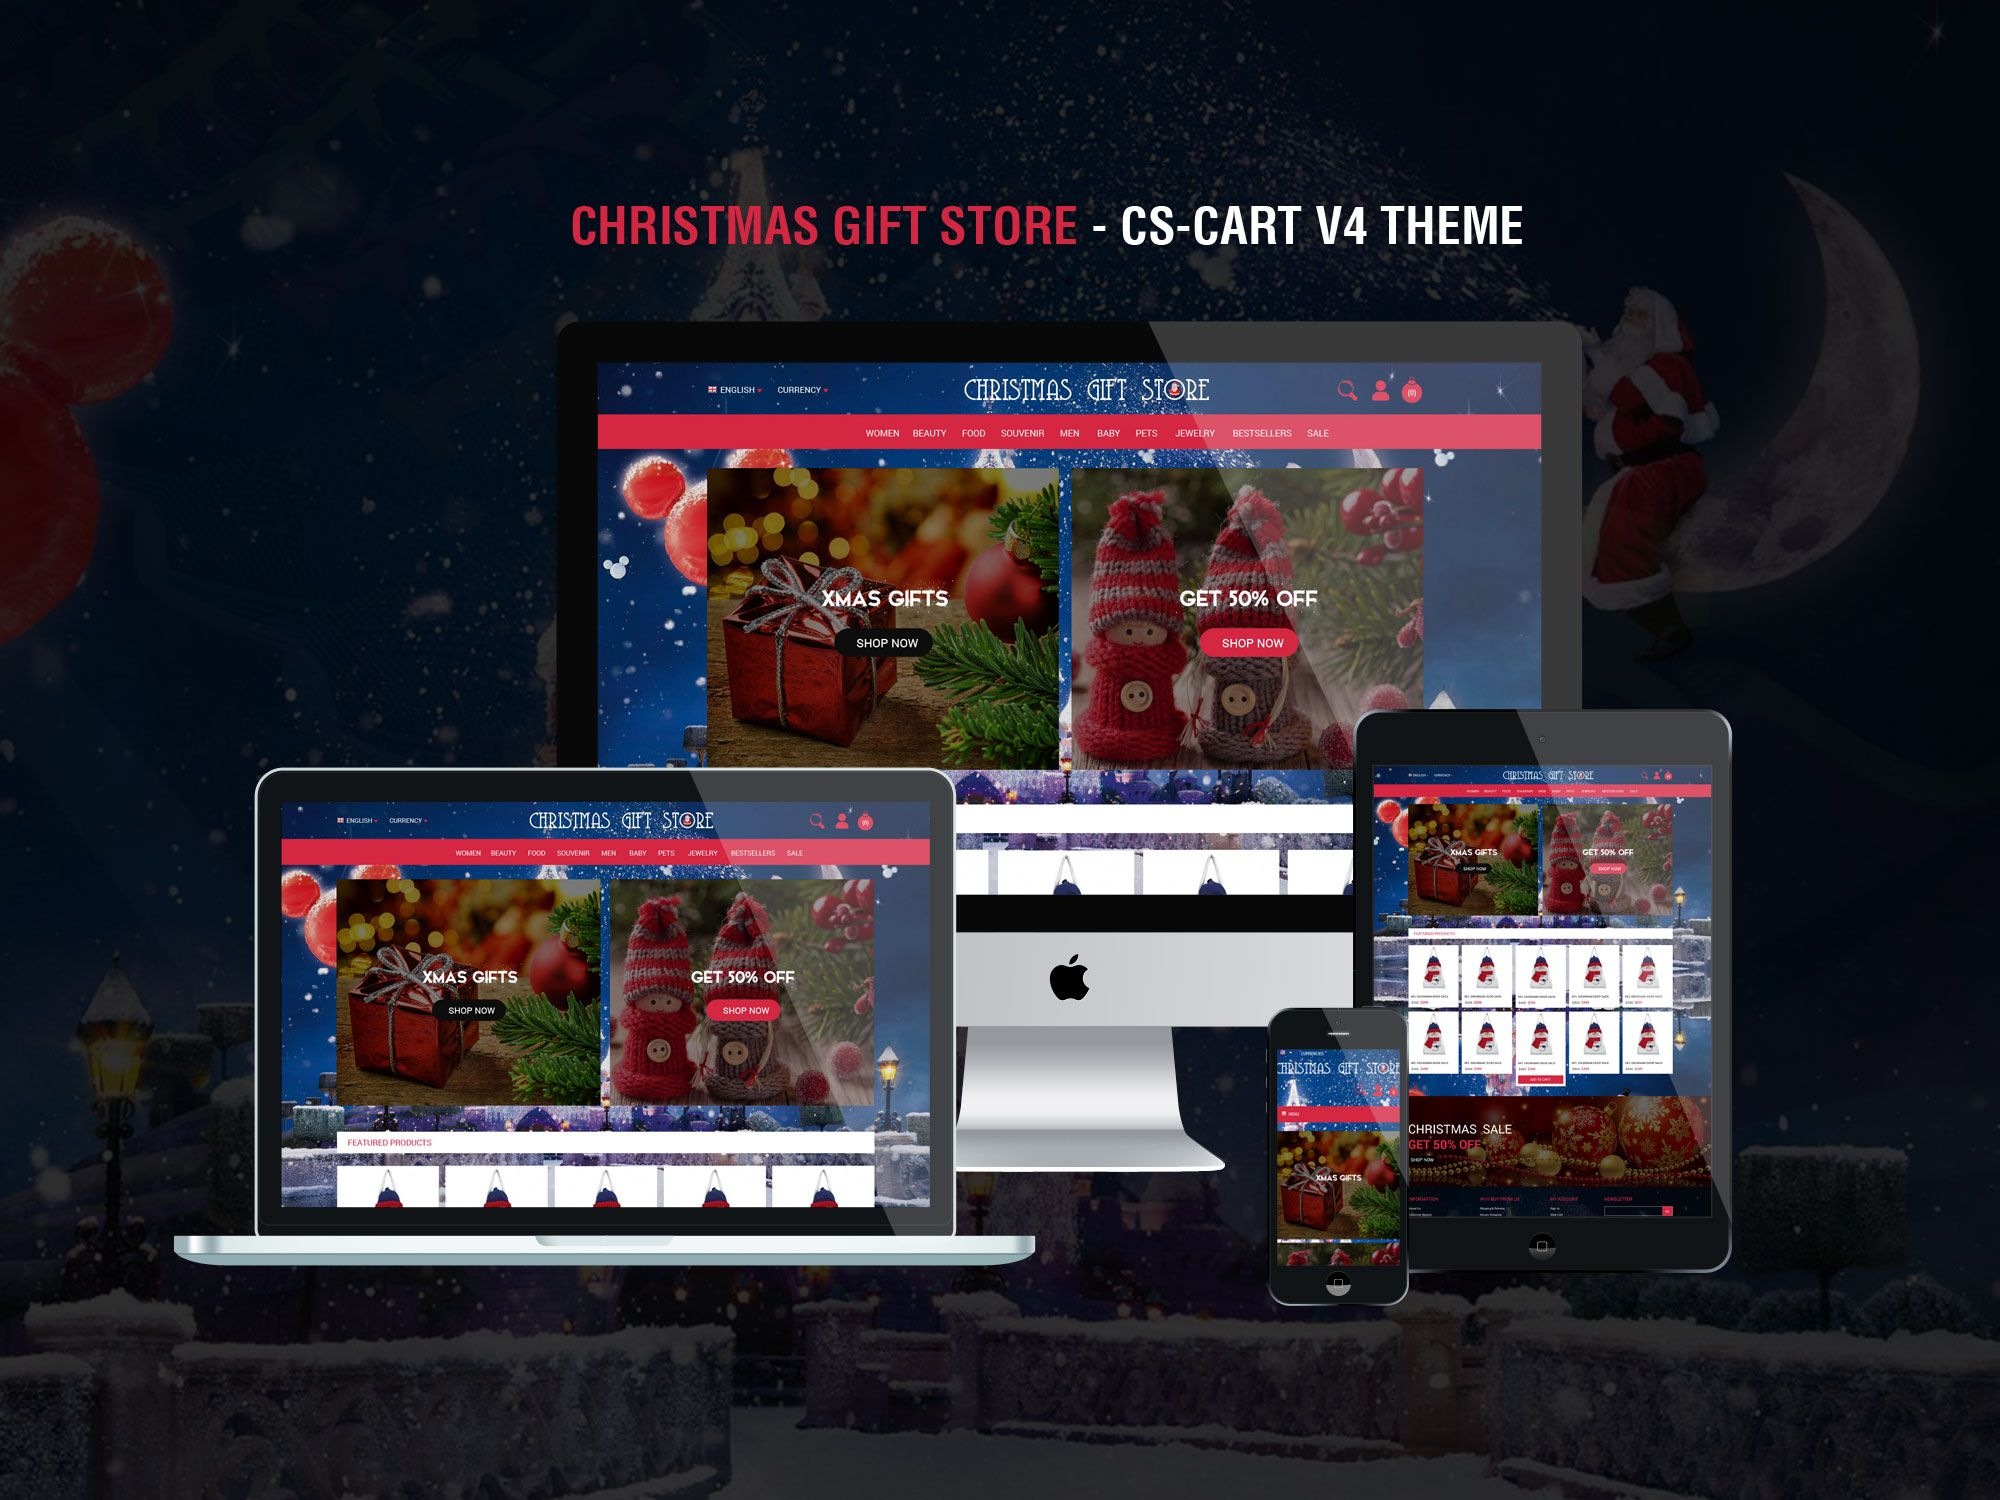 8 best Boonex dolphin themes images on Pinterest | Template, Role ...